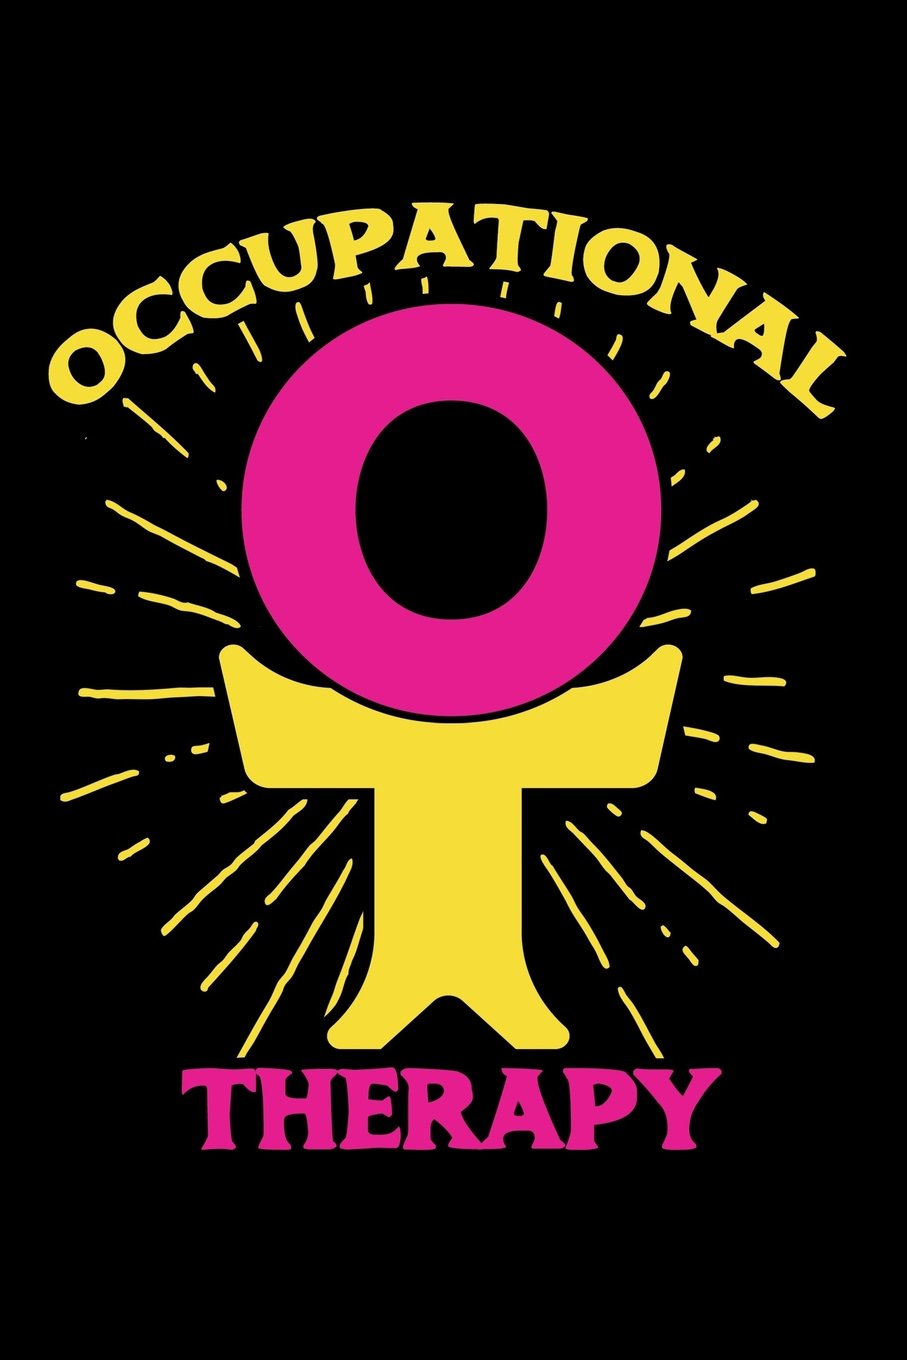 OT Notebook Occupational Therapy: Occupational Therapist Gifts / OT Journal for Writing Notes / Occupational Therapist Graduation Gifts for Classroom Student / 6x9 Journal 110 Blank Lined pages ebook